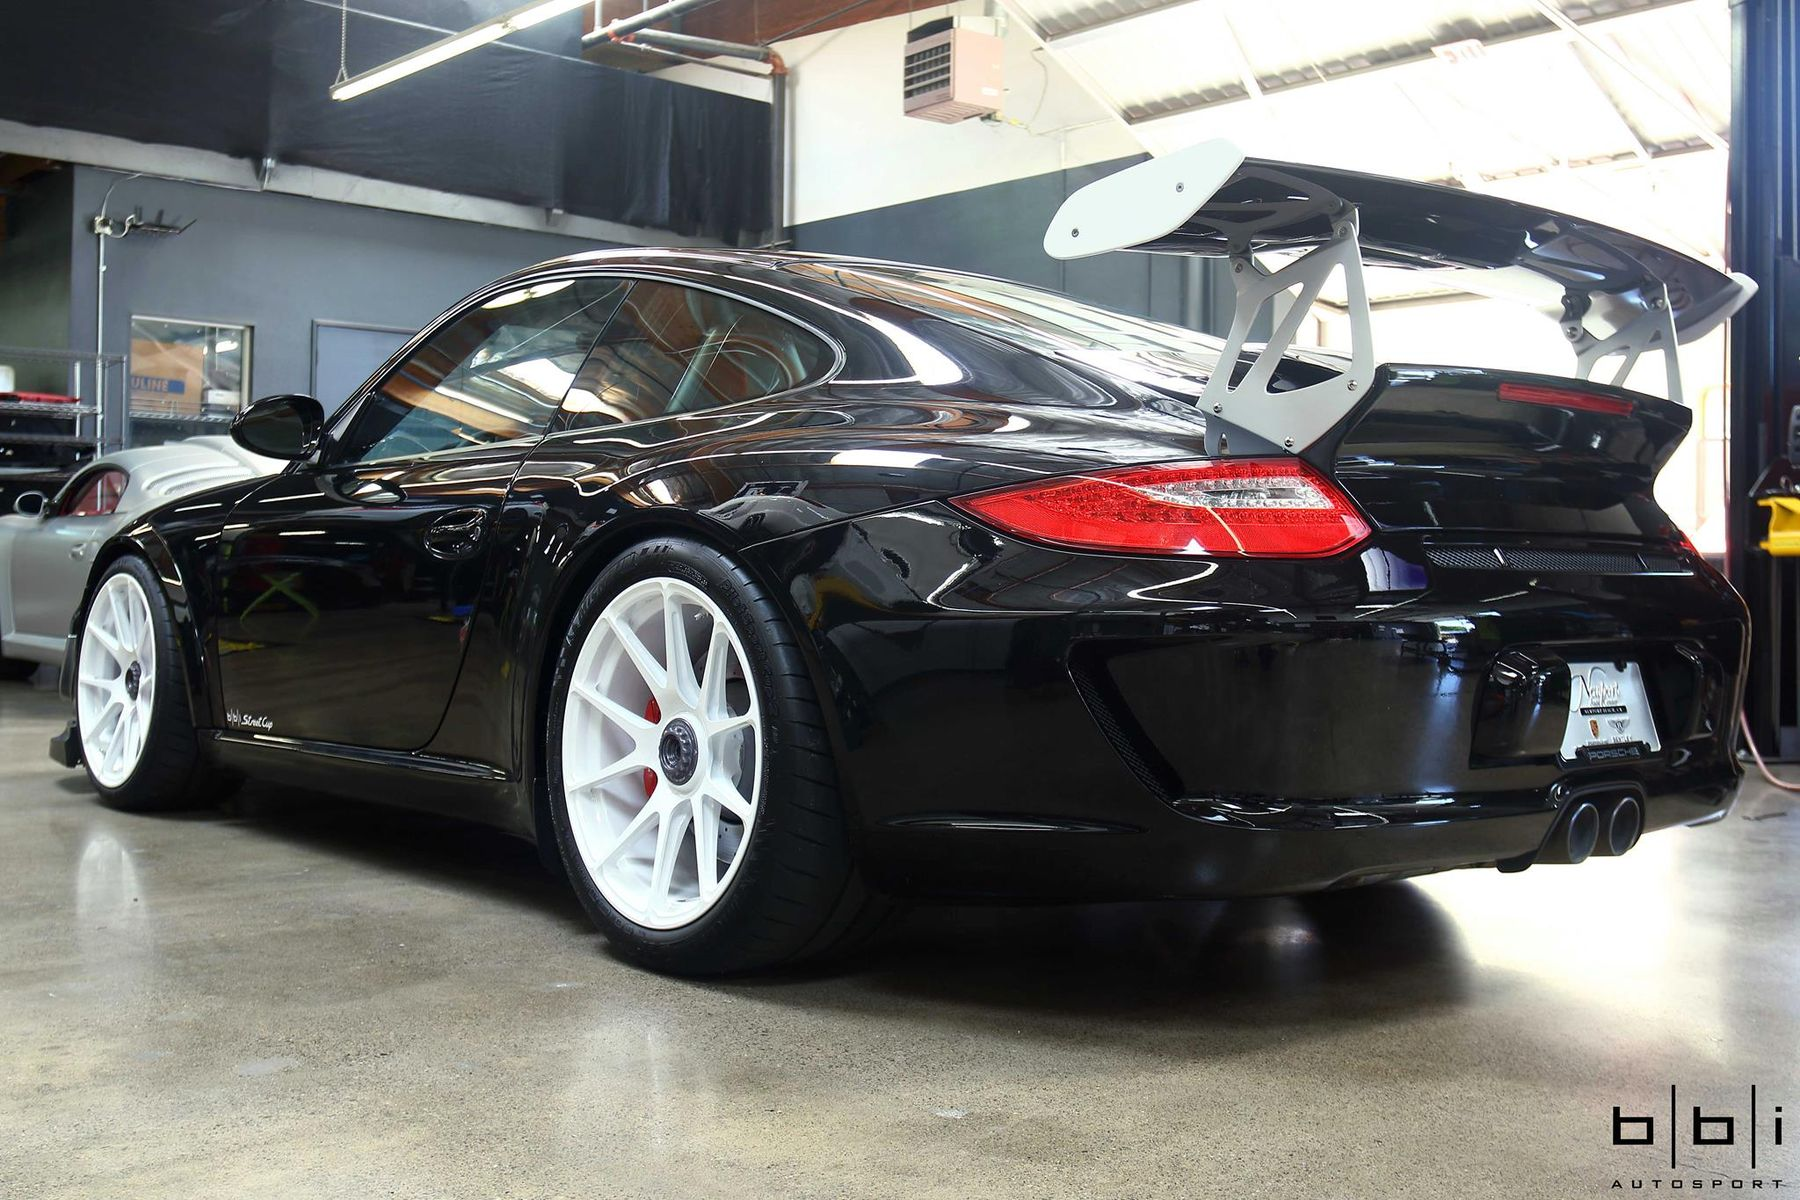 2010 Porsche 997 | BBi Autosport's Porsche 997.2 GT3 Street Cup on Forgeline One Piece Forged Monoblock GA1R Wheels